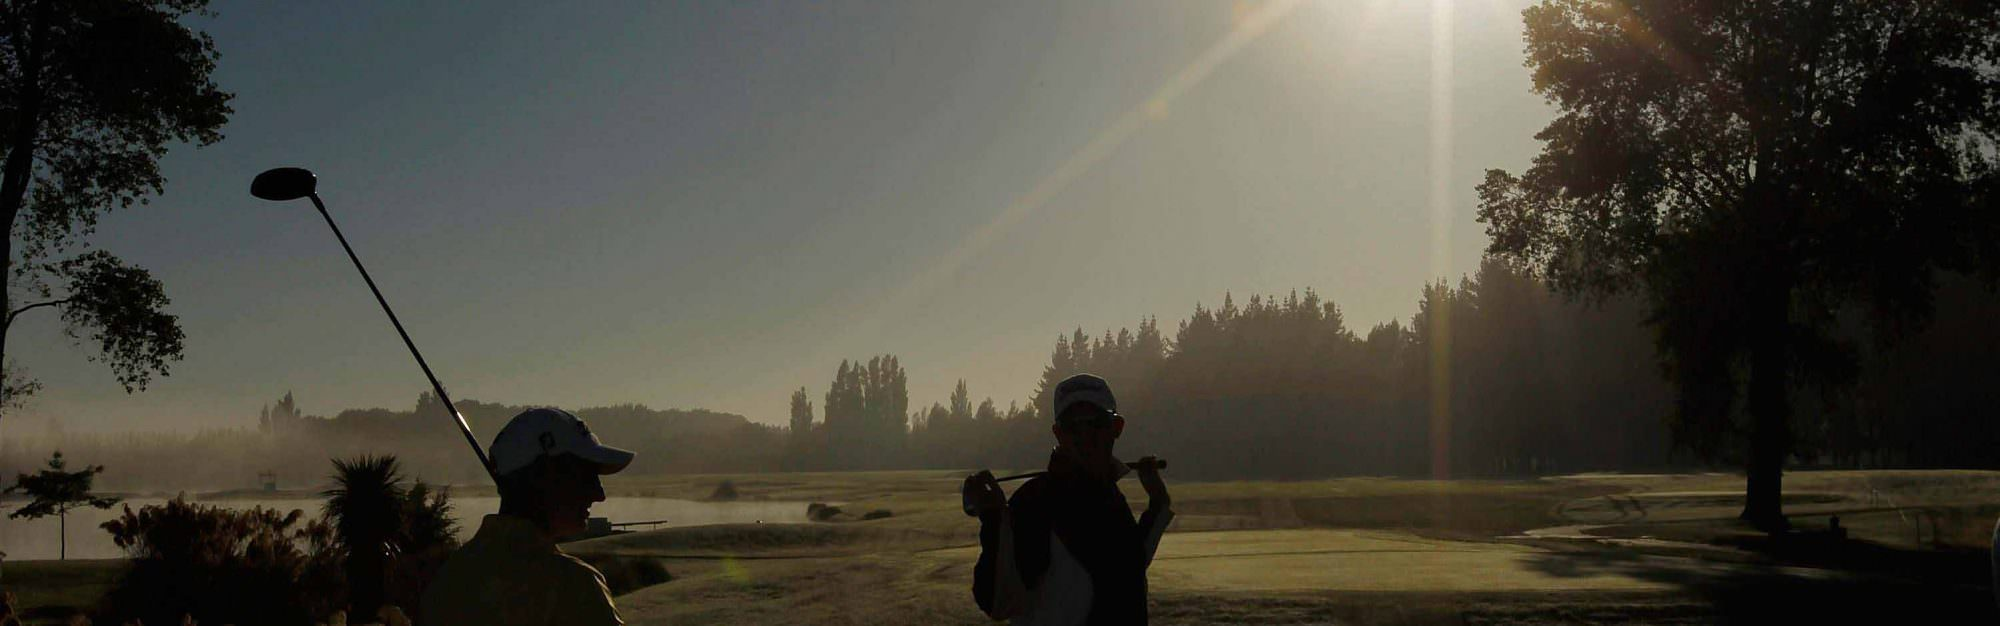 Golf courses are open - and it's bliss! Now it's up to us to make sure it stays that way